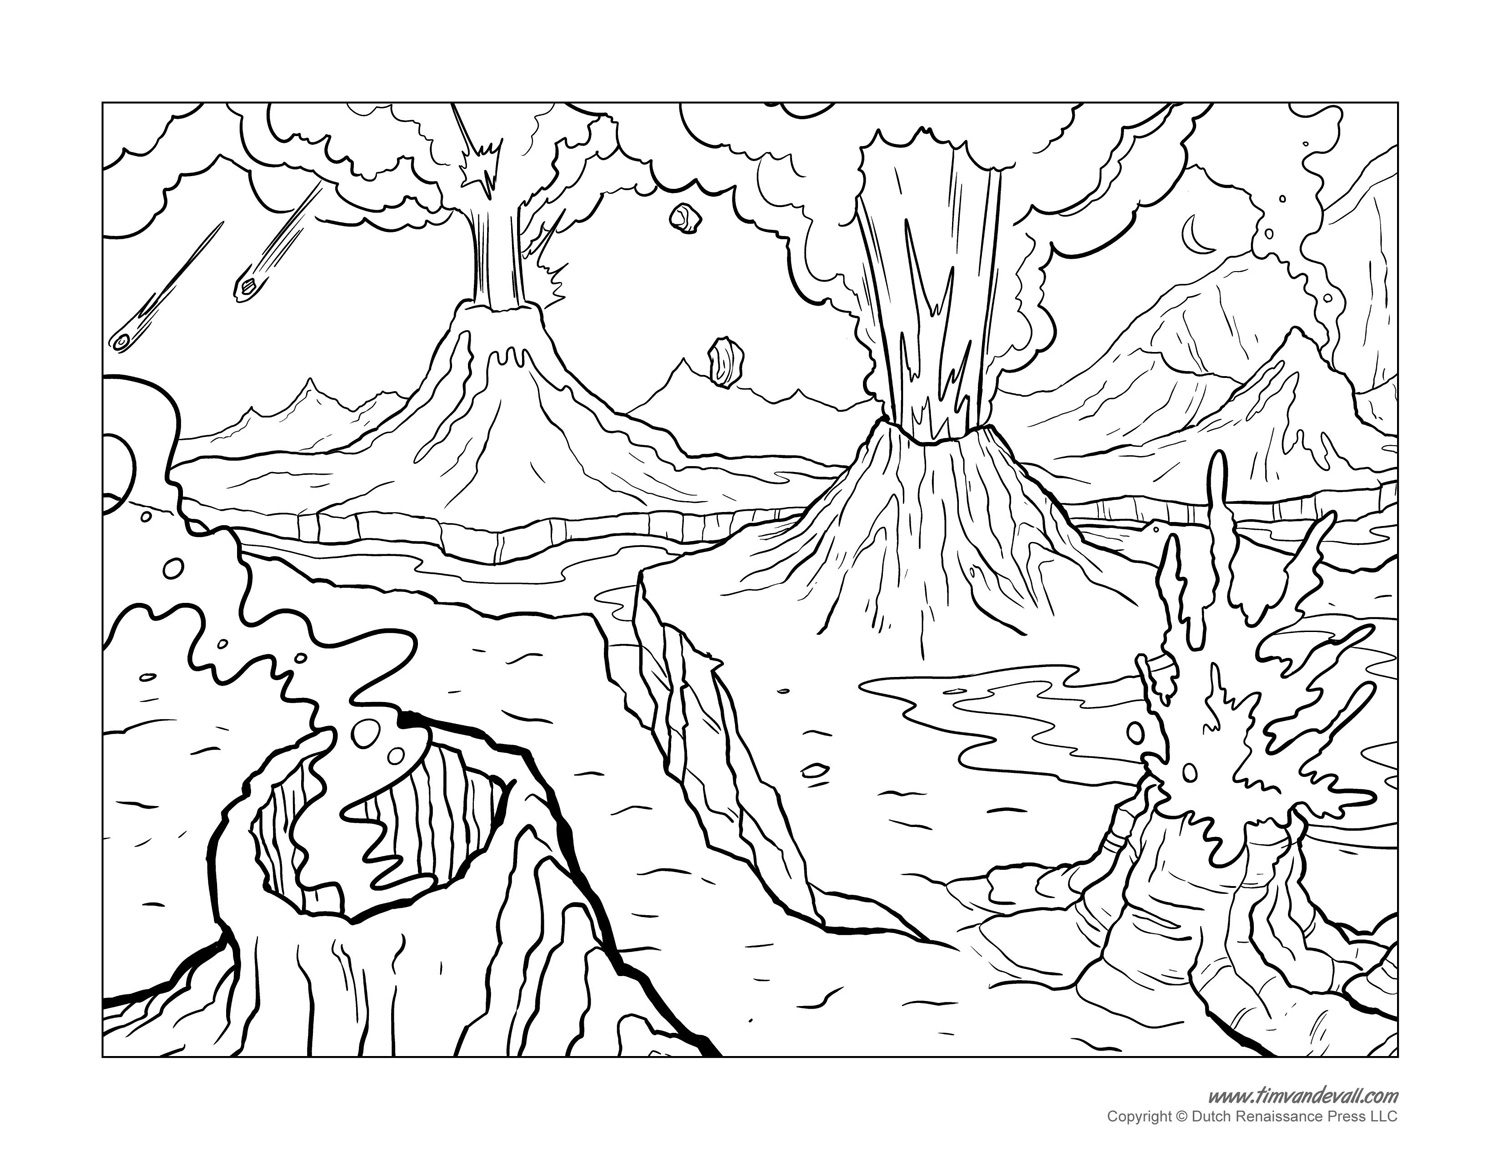 Island Volcano Eruption coloring #8, Download drawings